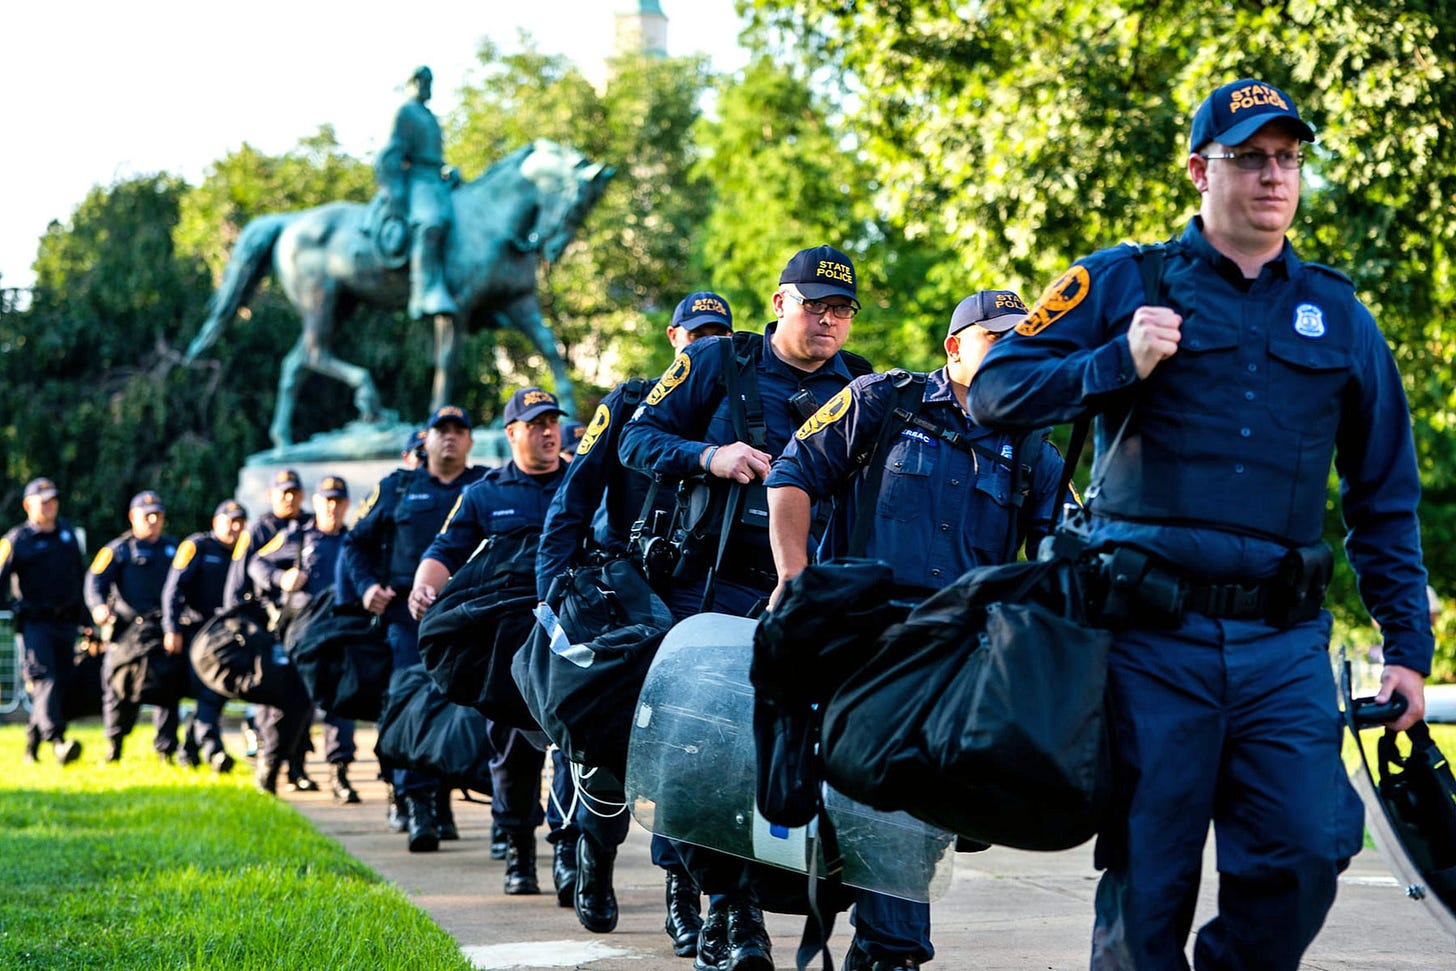 """Nation's capital braces for """"Unite the Right 2"""" rally by white supremacists  